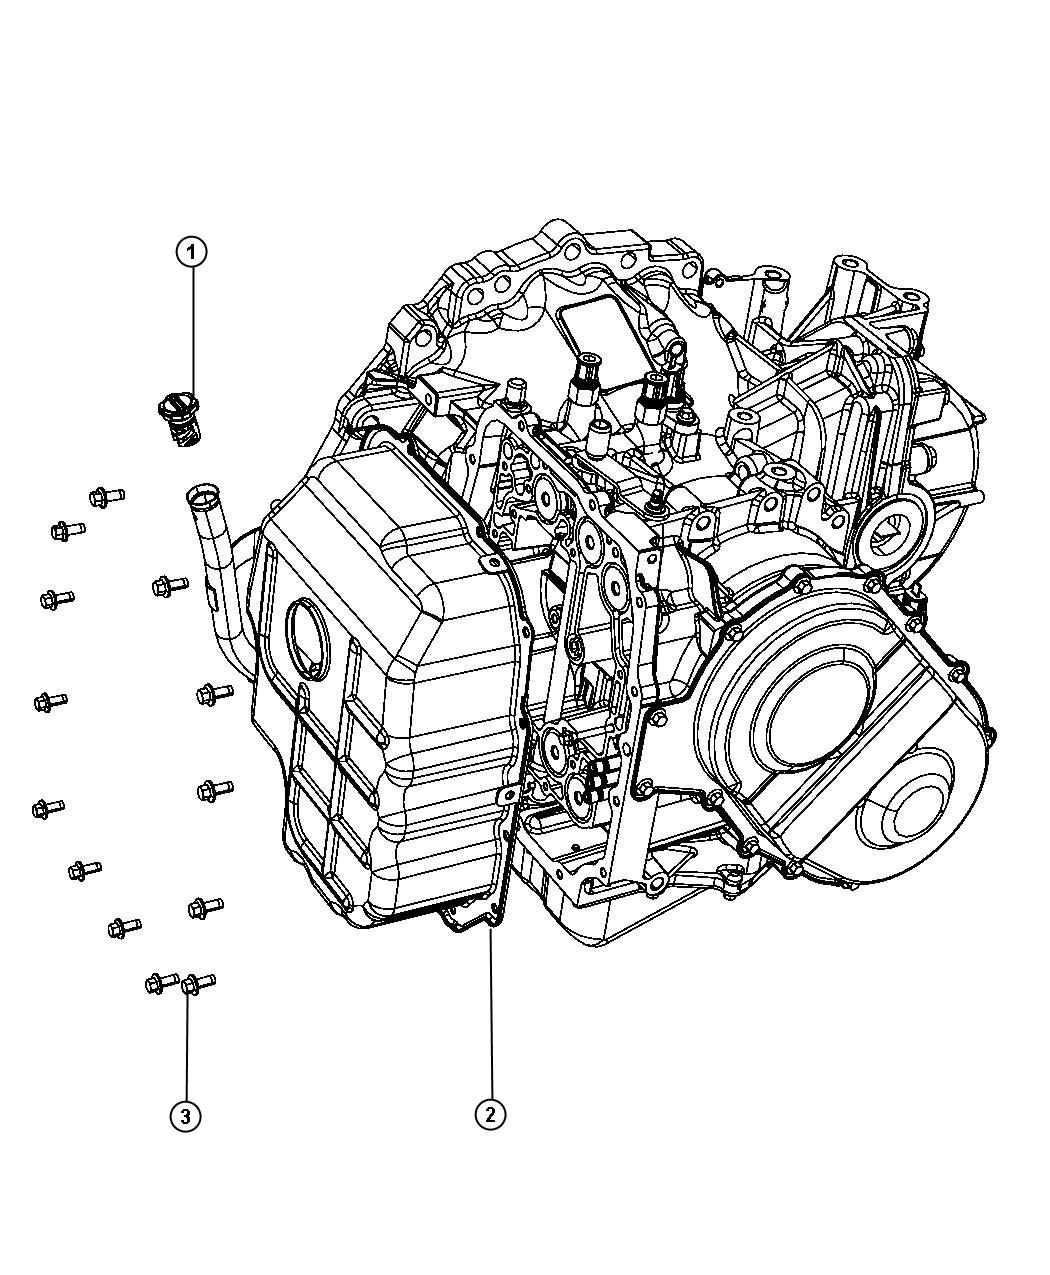 Service Manual How To Change Transmission Fluid